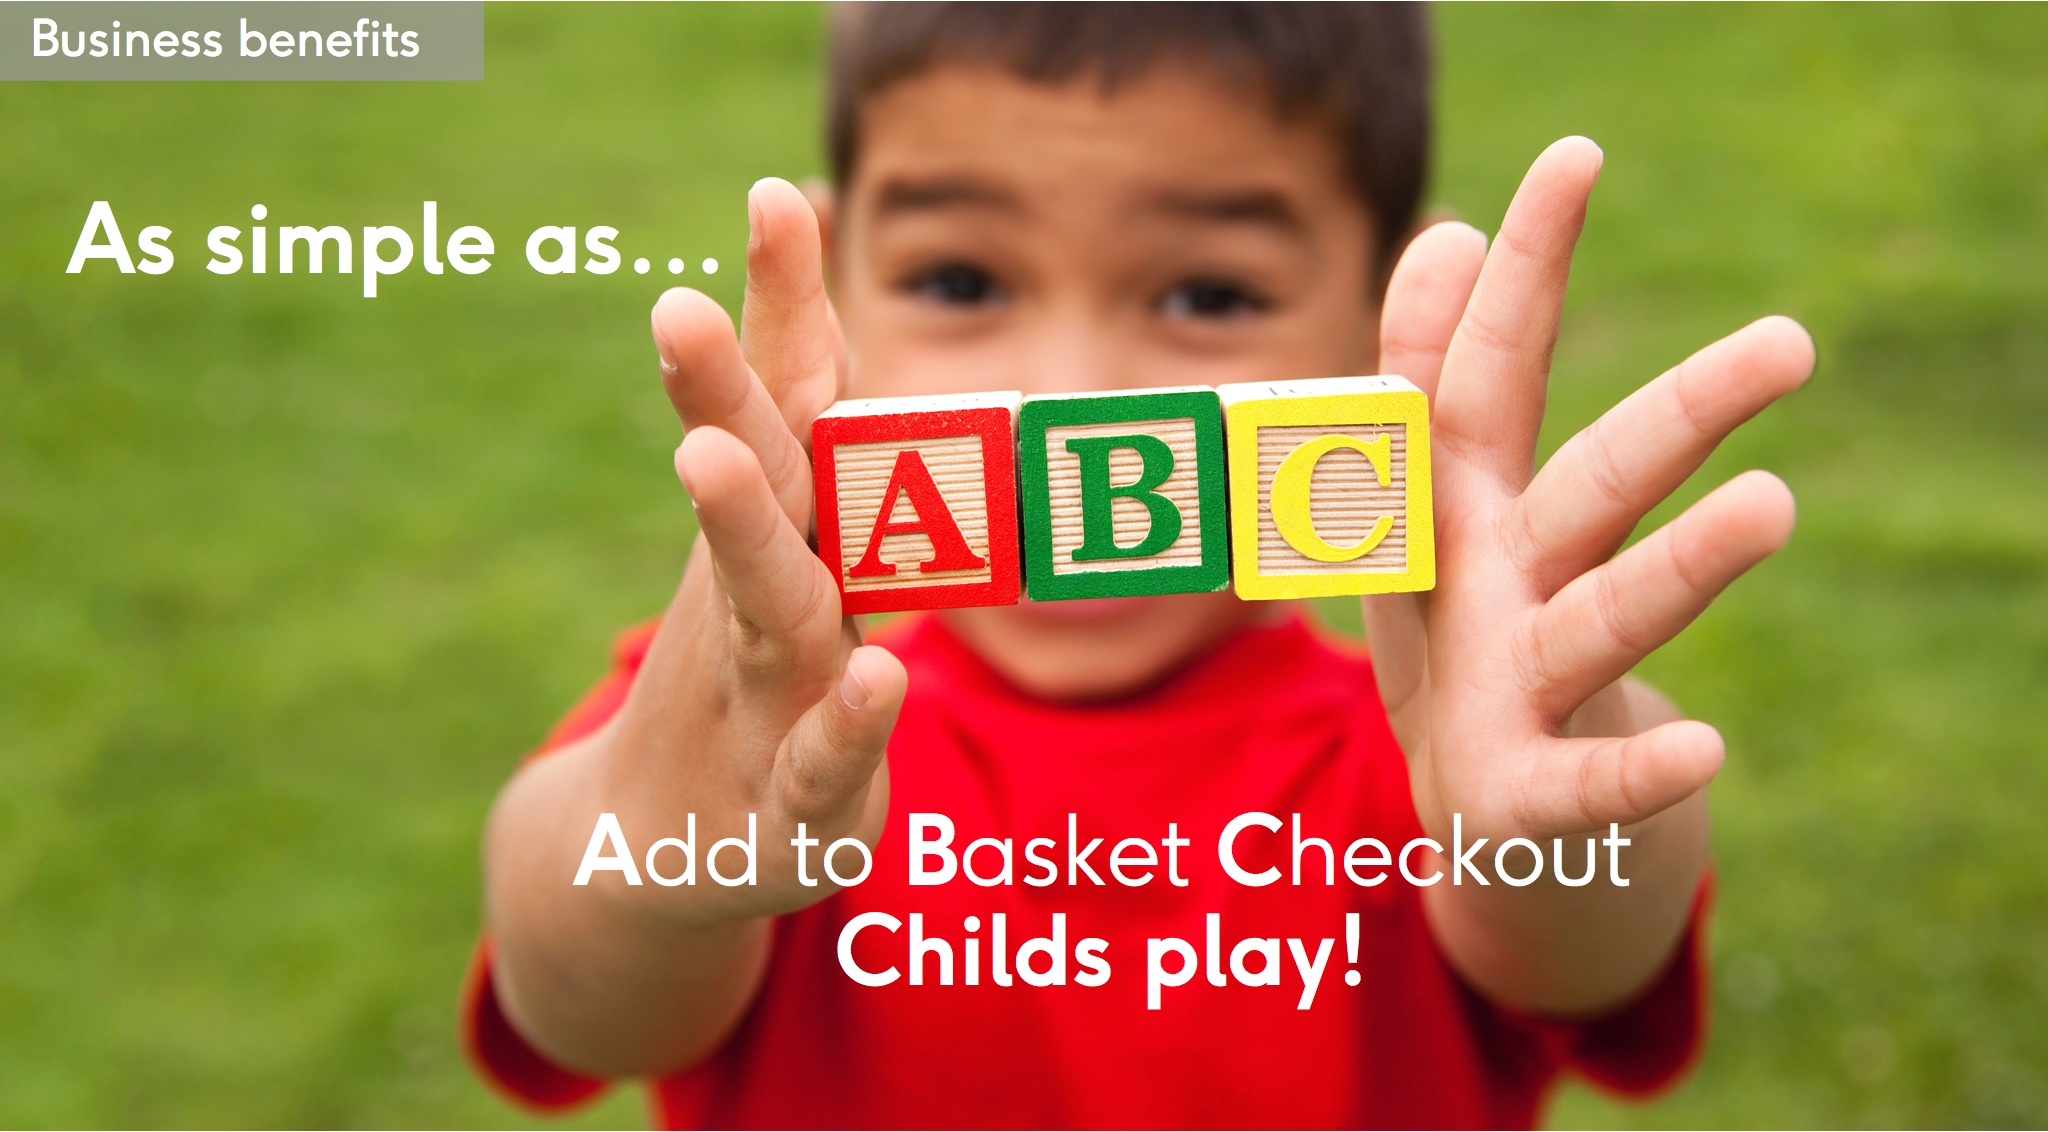 Business benefit: As simple as add to basket, checkout - childs play!